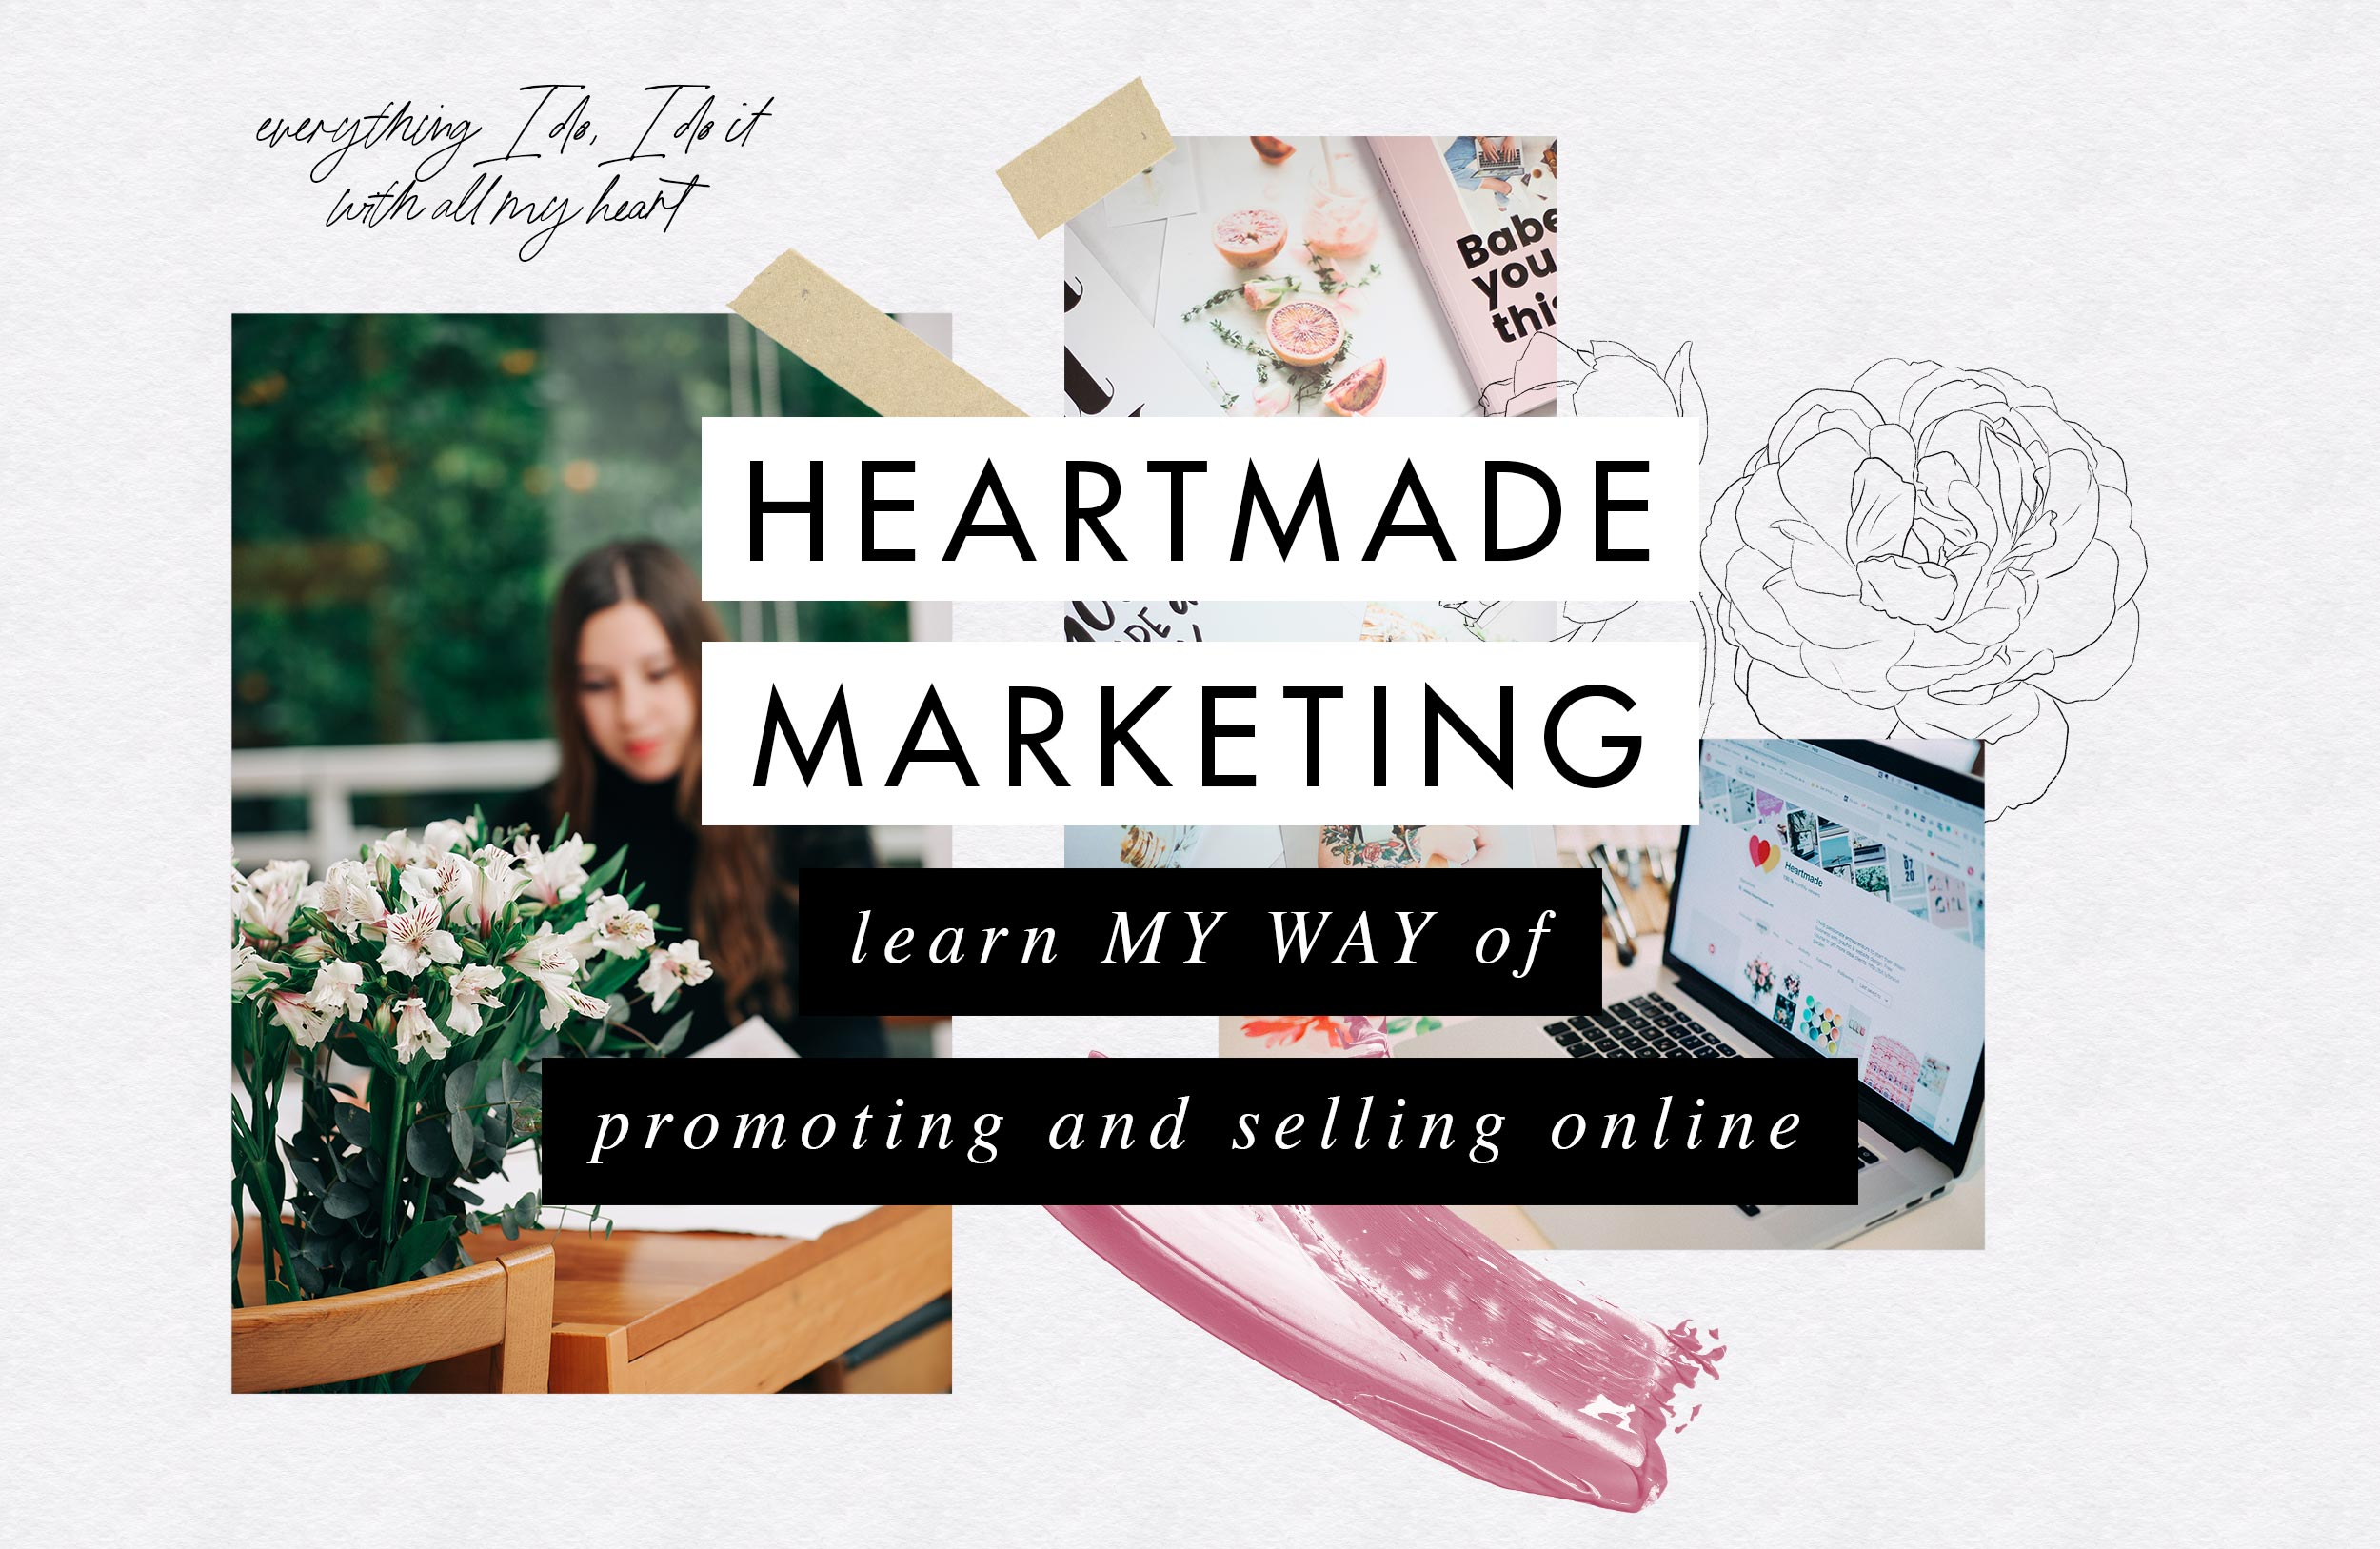 Heartmade Marketing: Learn MY WAY of promoting and selling online even if you are an introvert